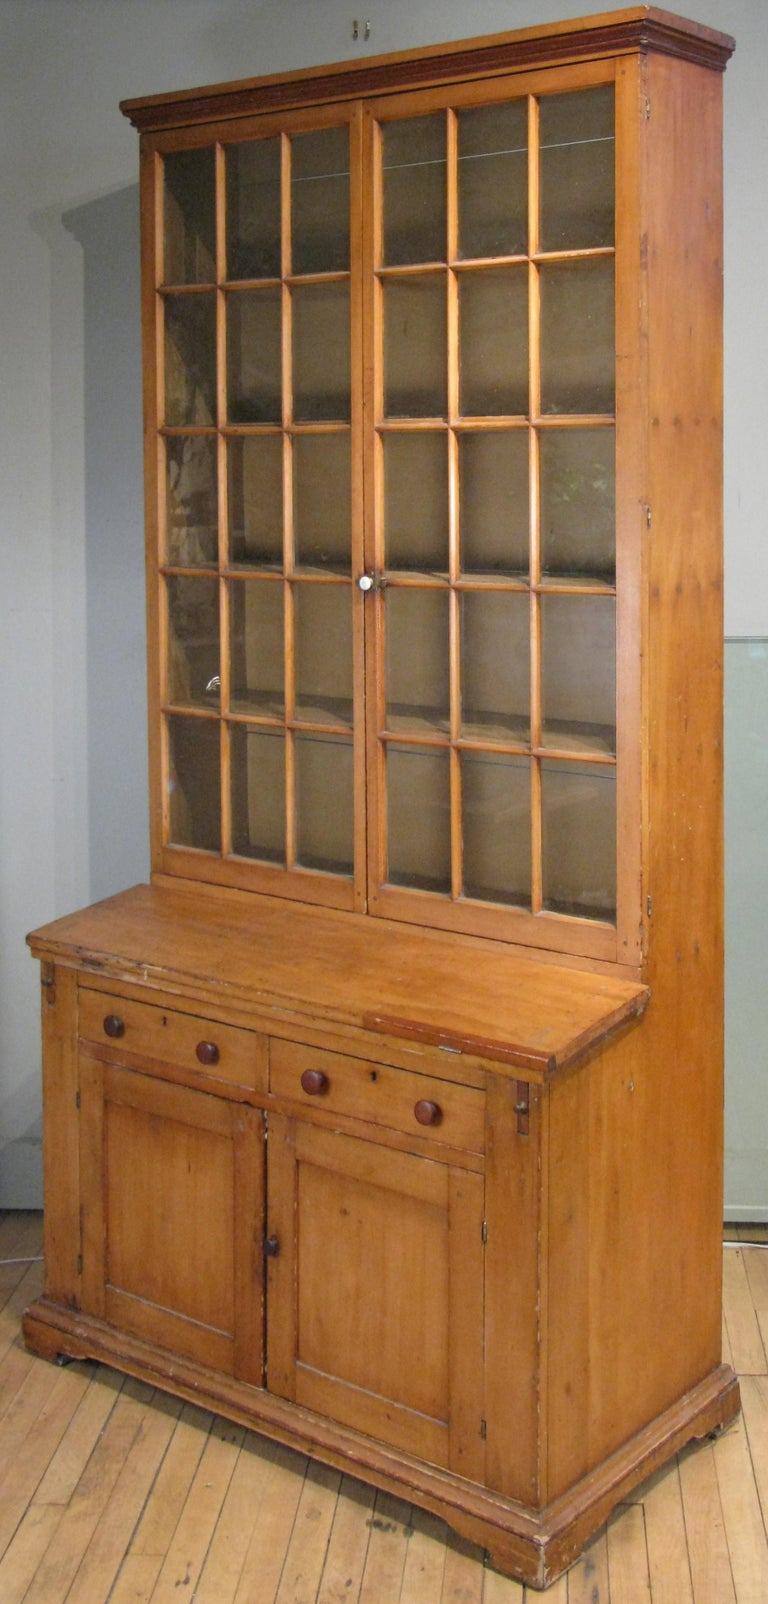 A very handsome antique late 19th century secretary bookcase with a fold out desk surface. Upper section has a pair of divided pane glass doors with shelves, and the lower portion has two drawers and a pair of doors with shelf. Very nice scale and